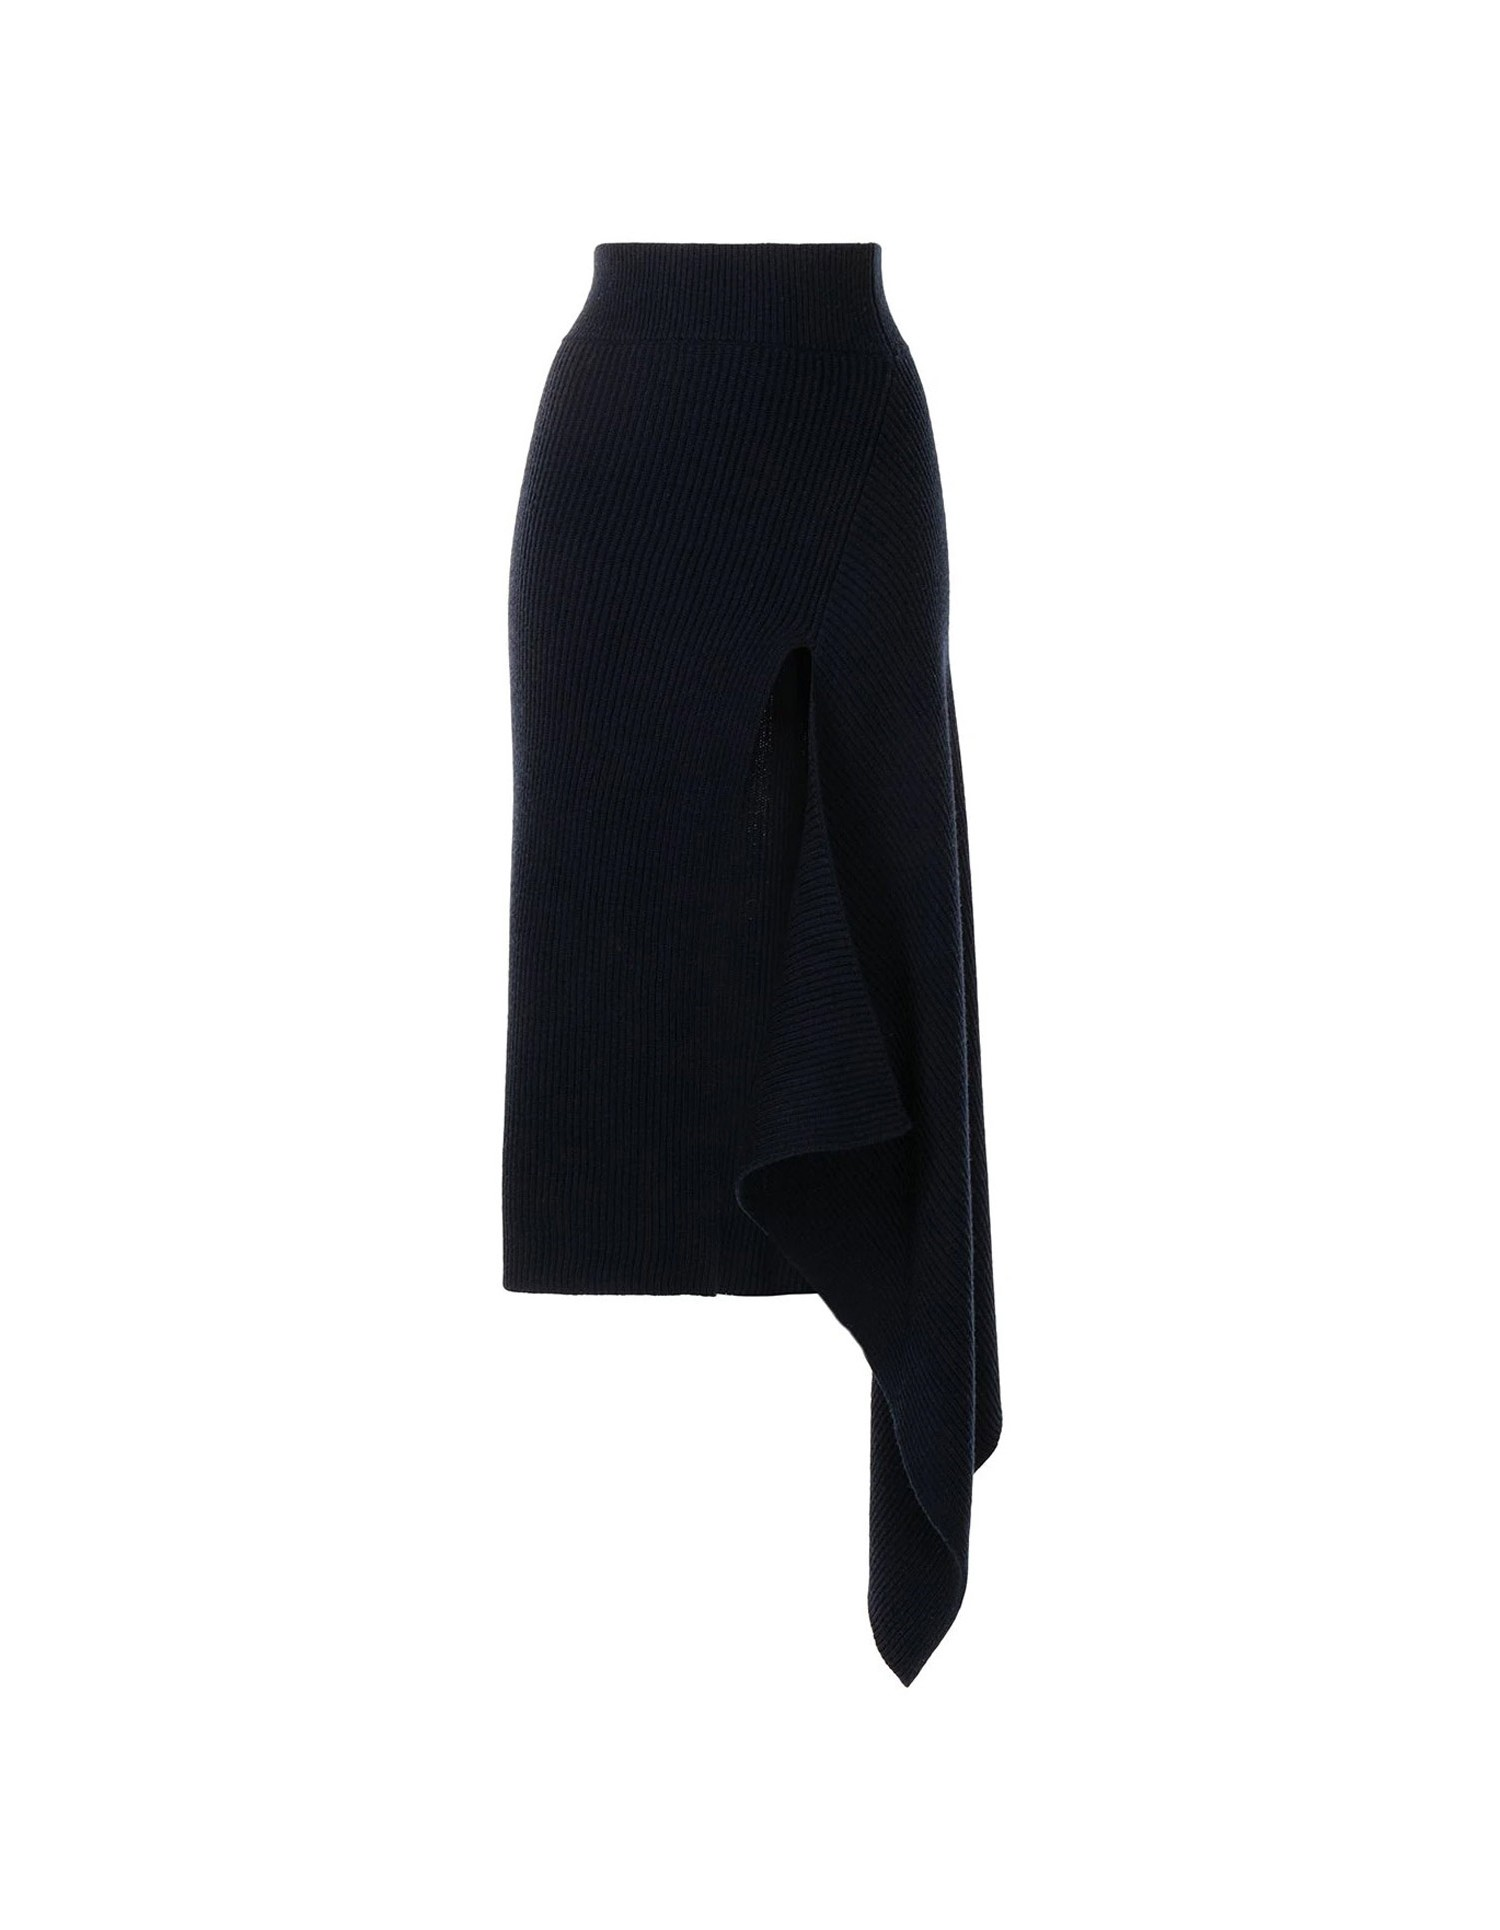 MONSE Sliced Ribbed Knit Skirt in Black Flat Front